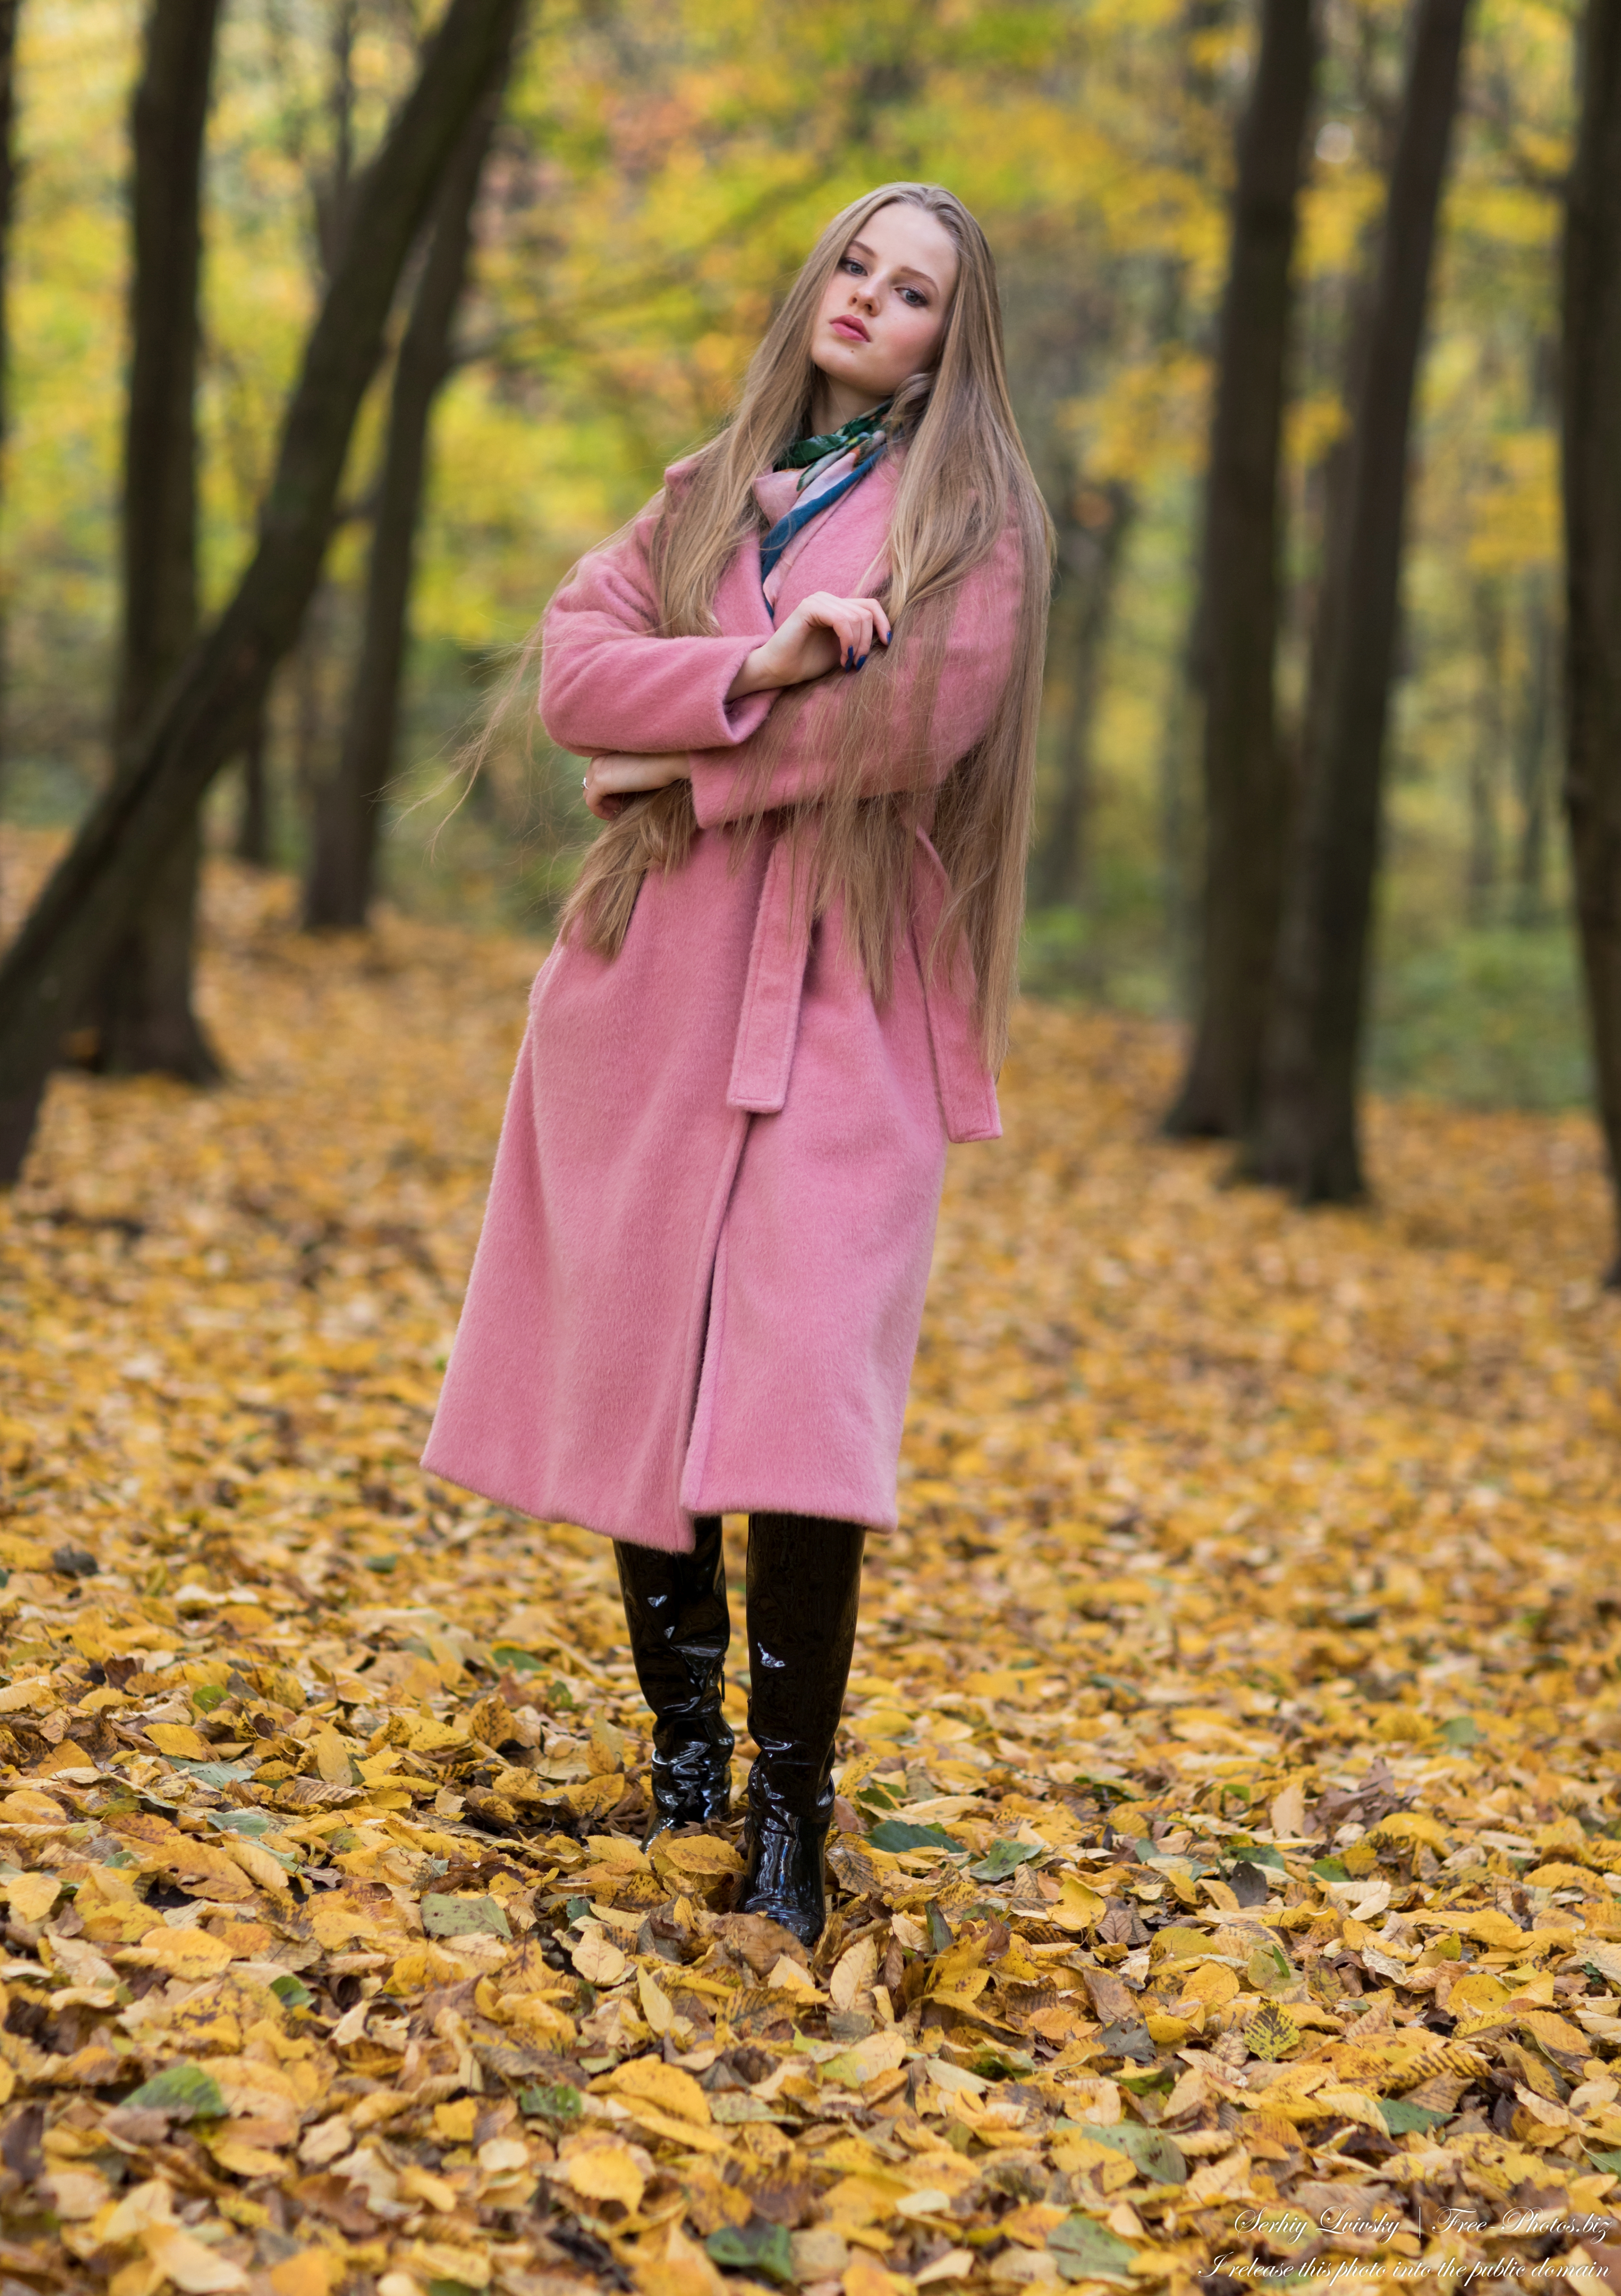 diana_an_18-year-old_natural_blonde_girl_photographed_in_oct_2020_by_serhiy_lvivsky_23